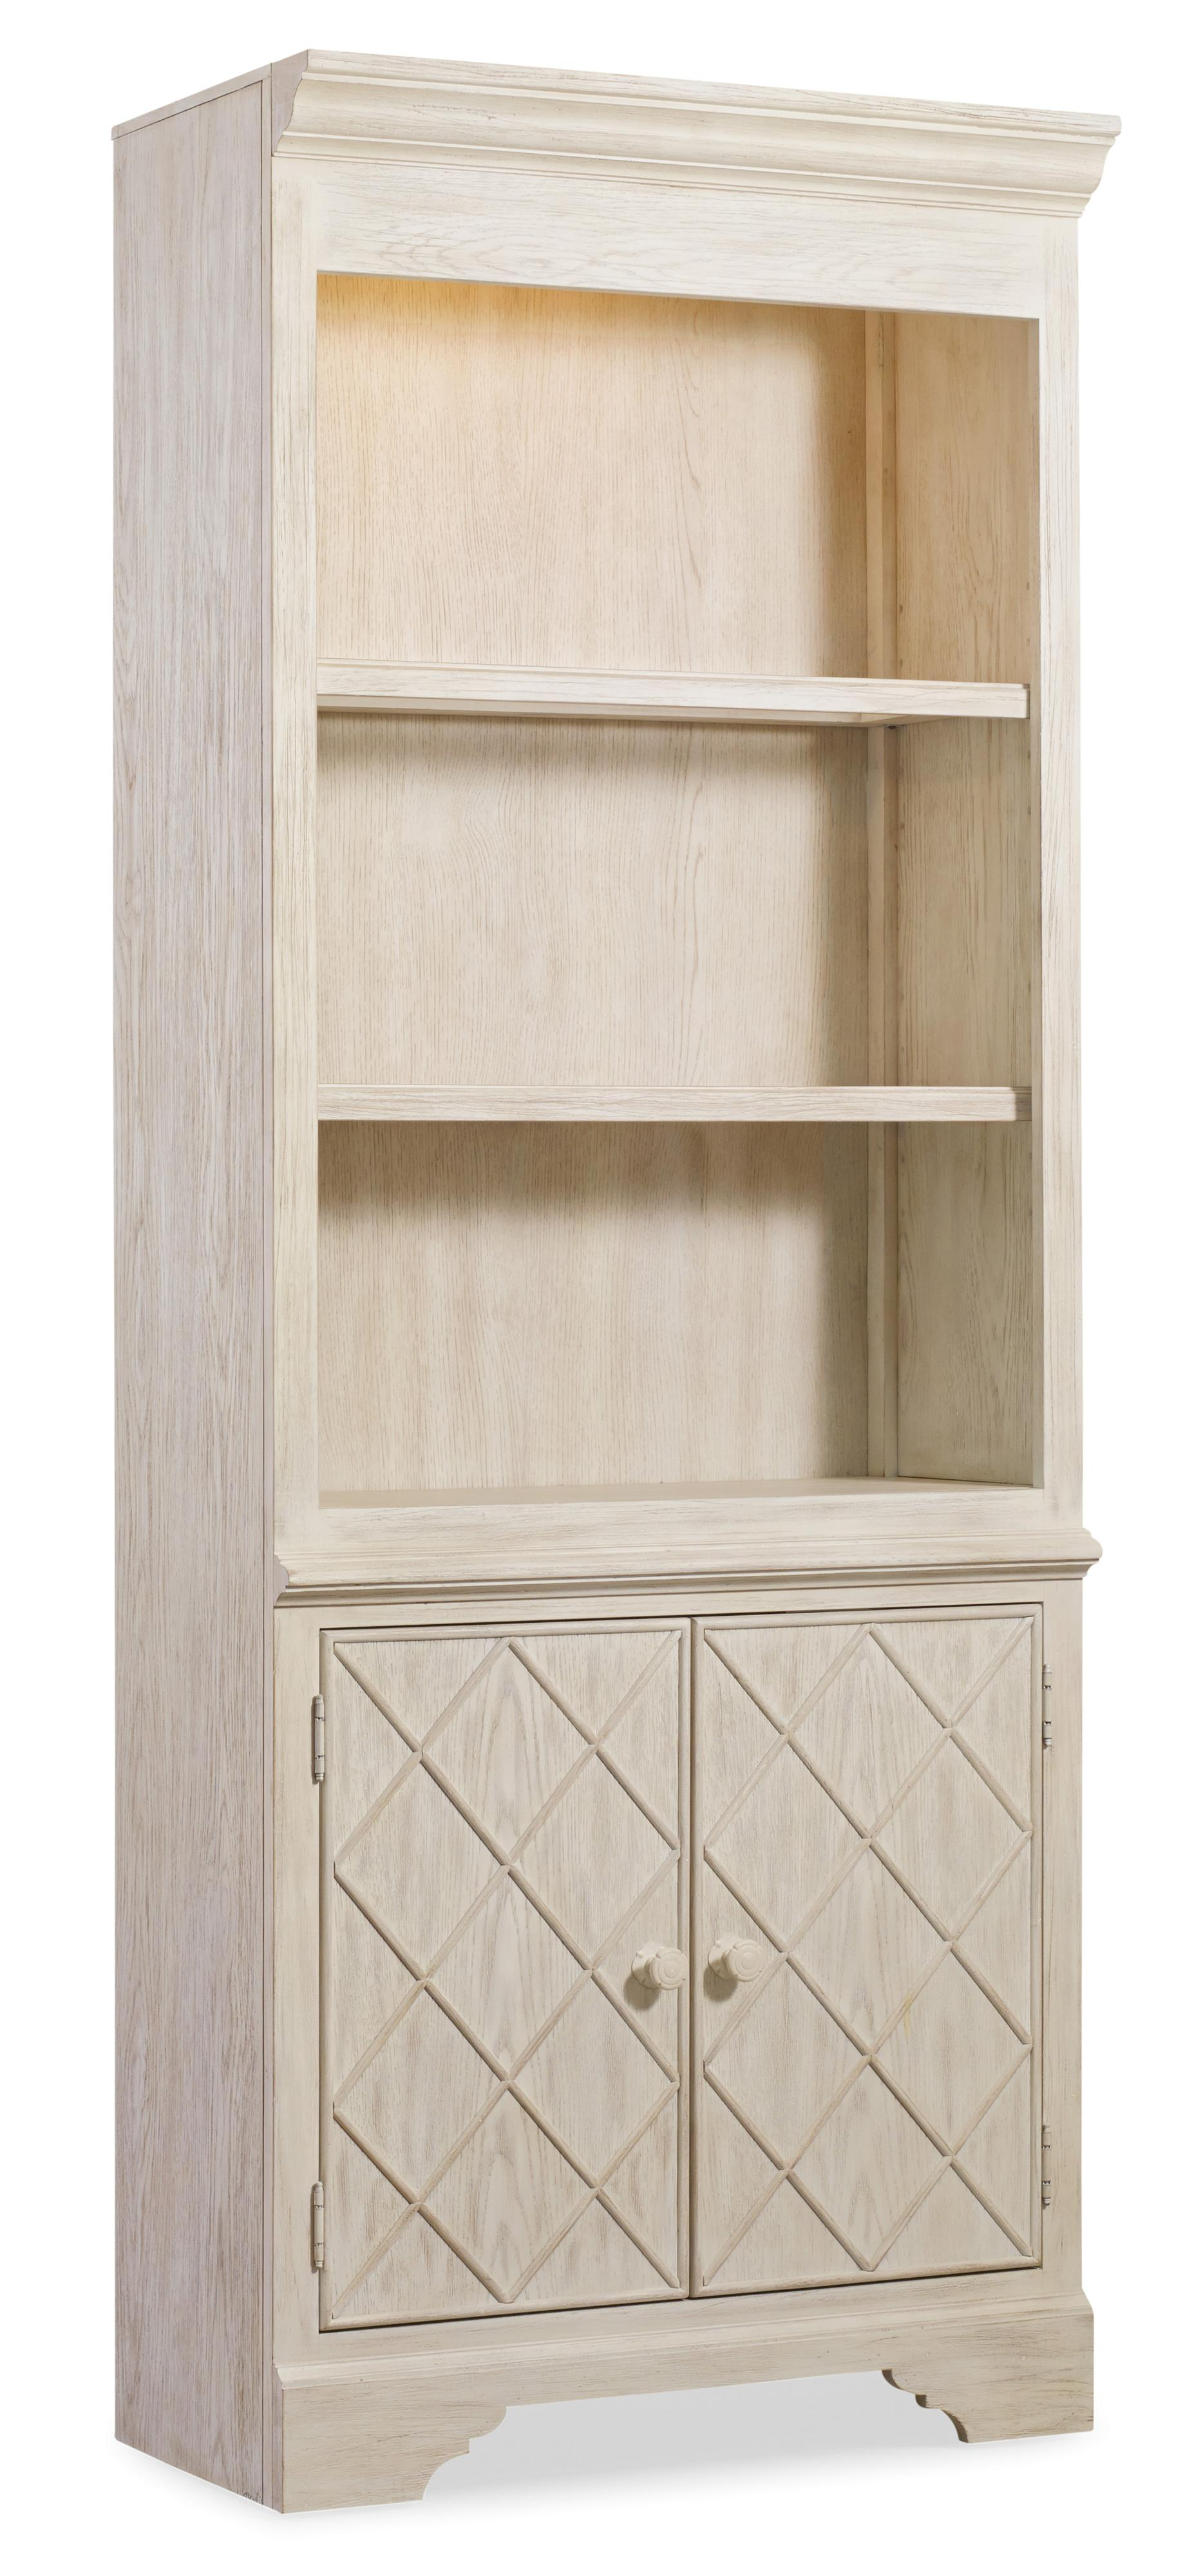 Hooker Furniture Sunset Point Bunching Bookcase - Item Number: 5325-10446